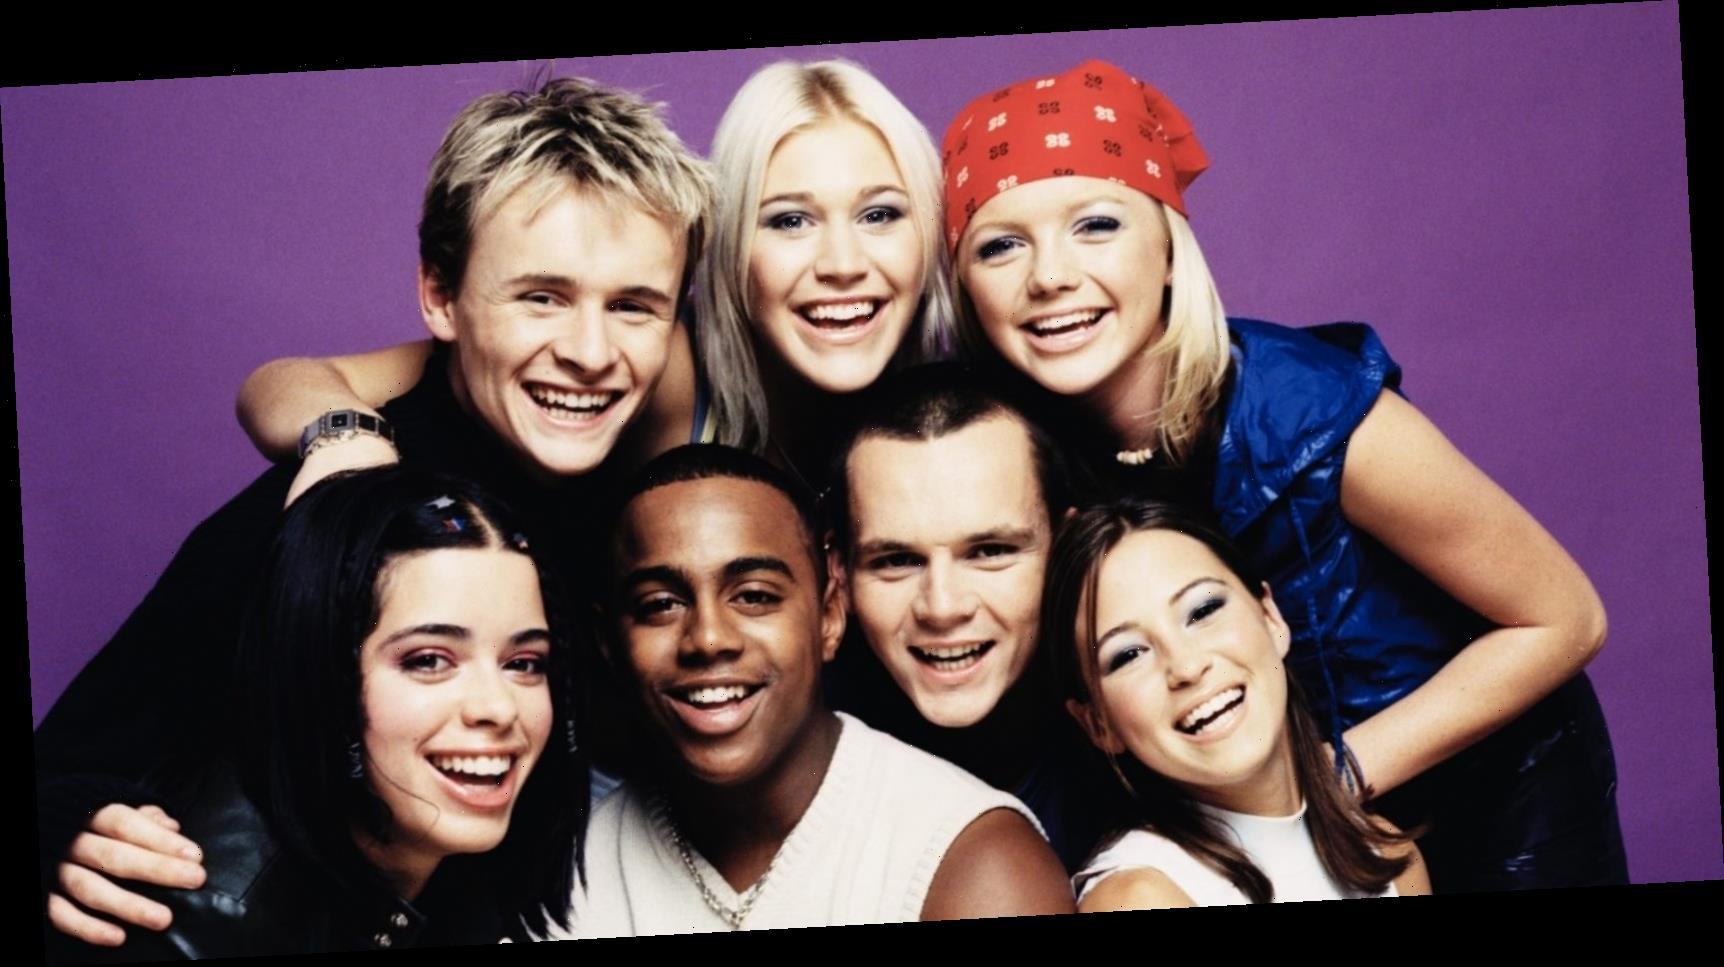 An S Club 7 reunion might finally be on the cards, and we're very excited